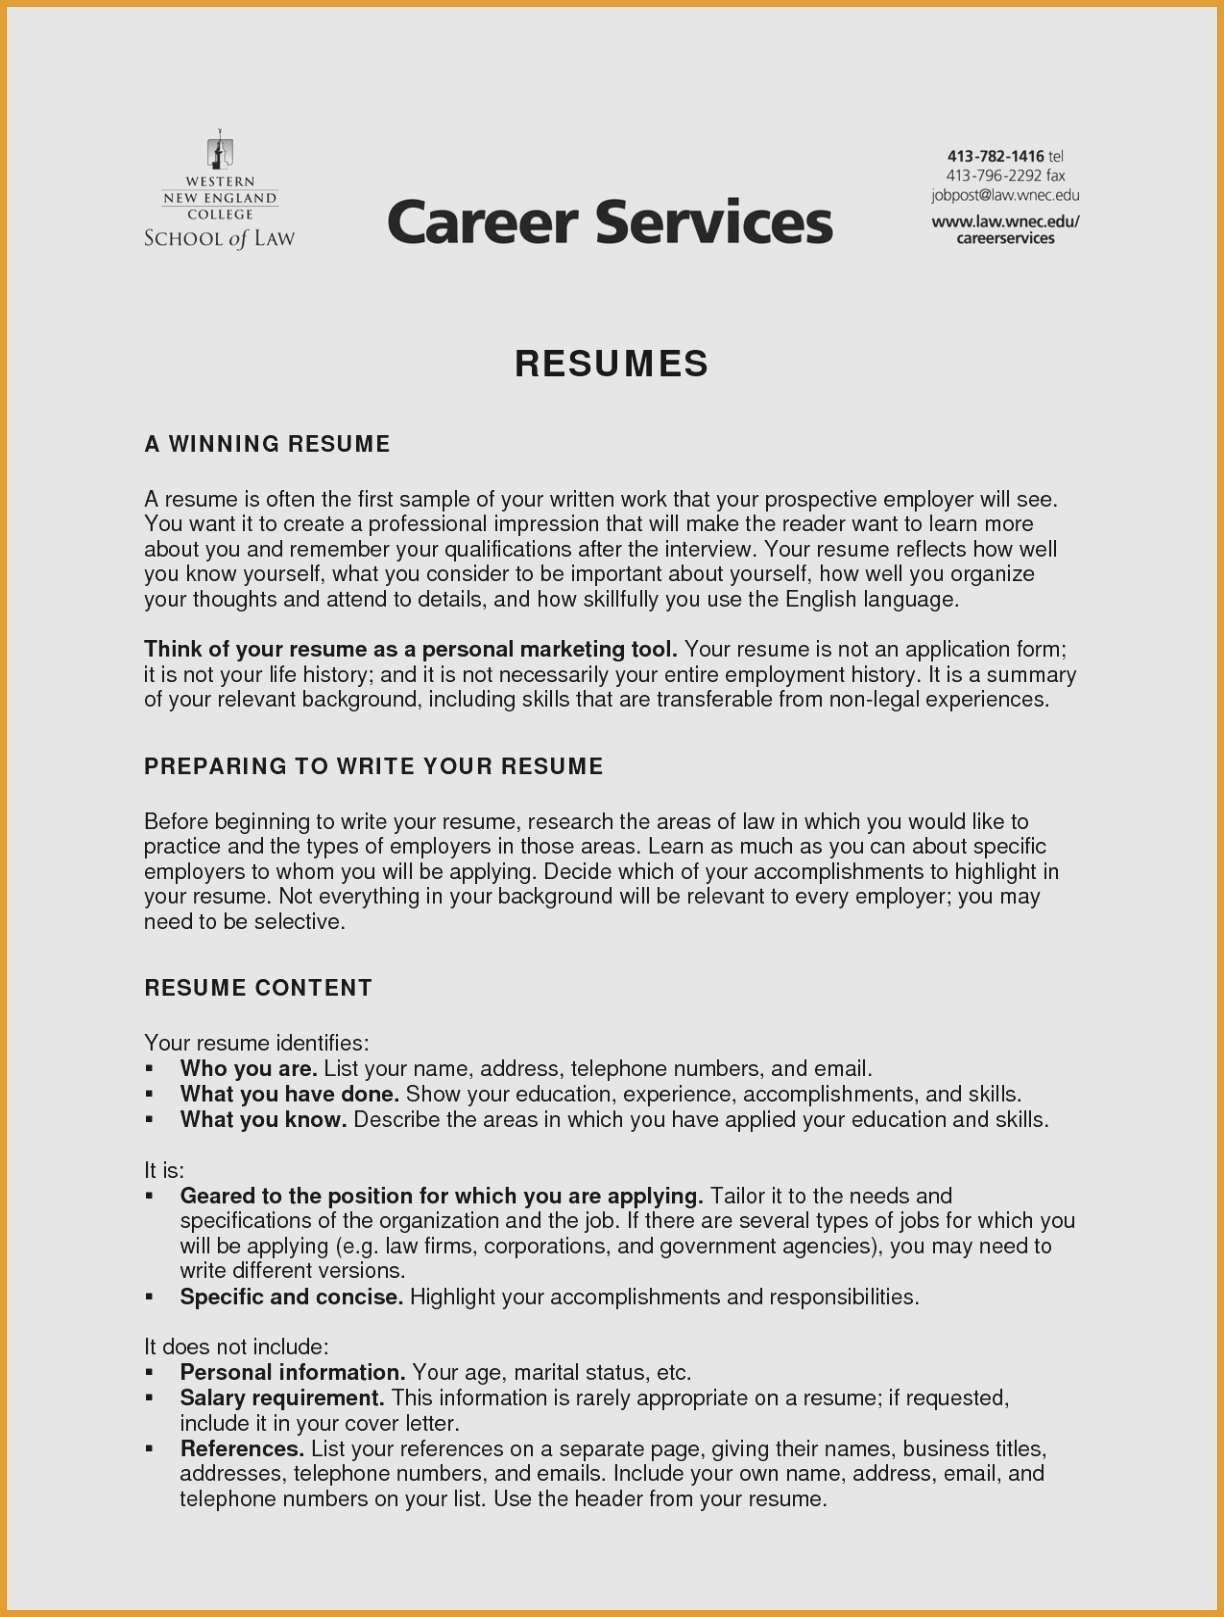 Types Of Skills for Resume - Entry Level Marketing Resume Type A Resume Beautiful New Entry Level